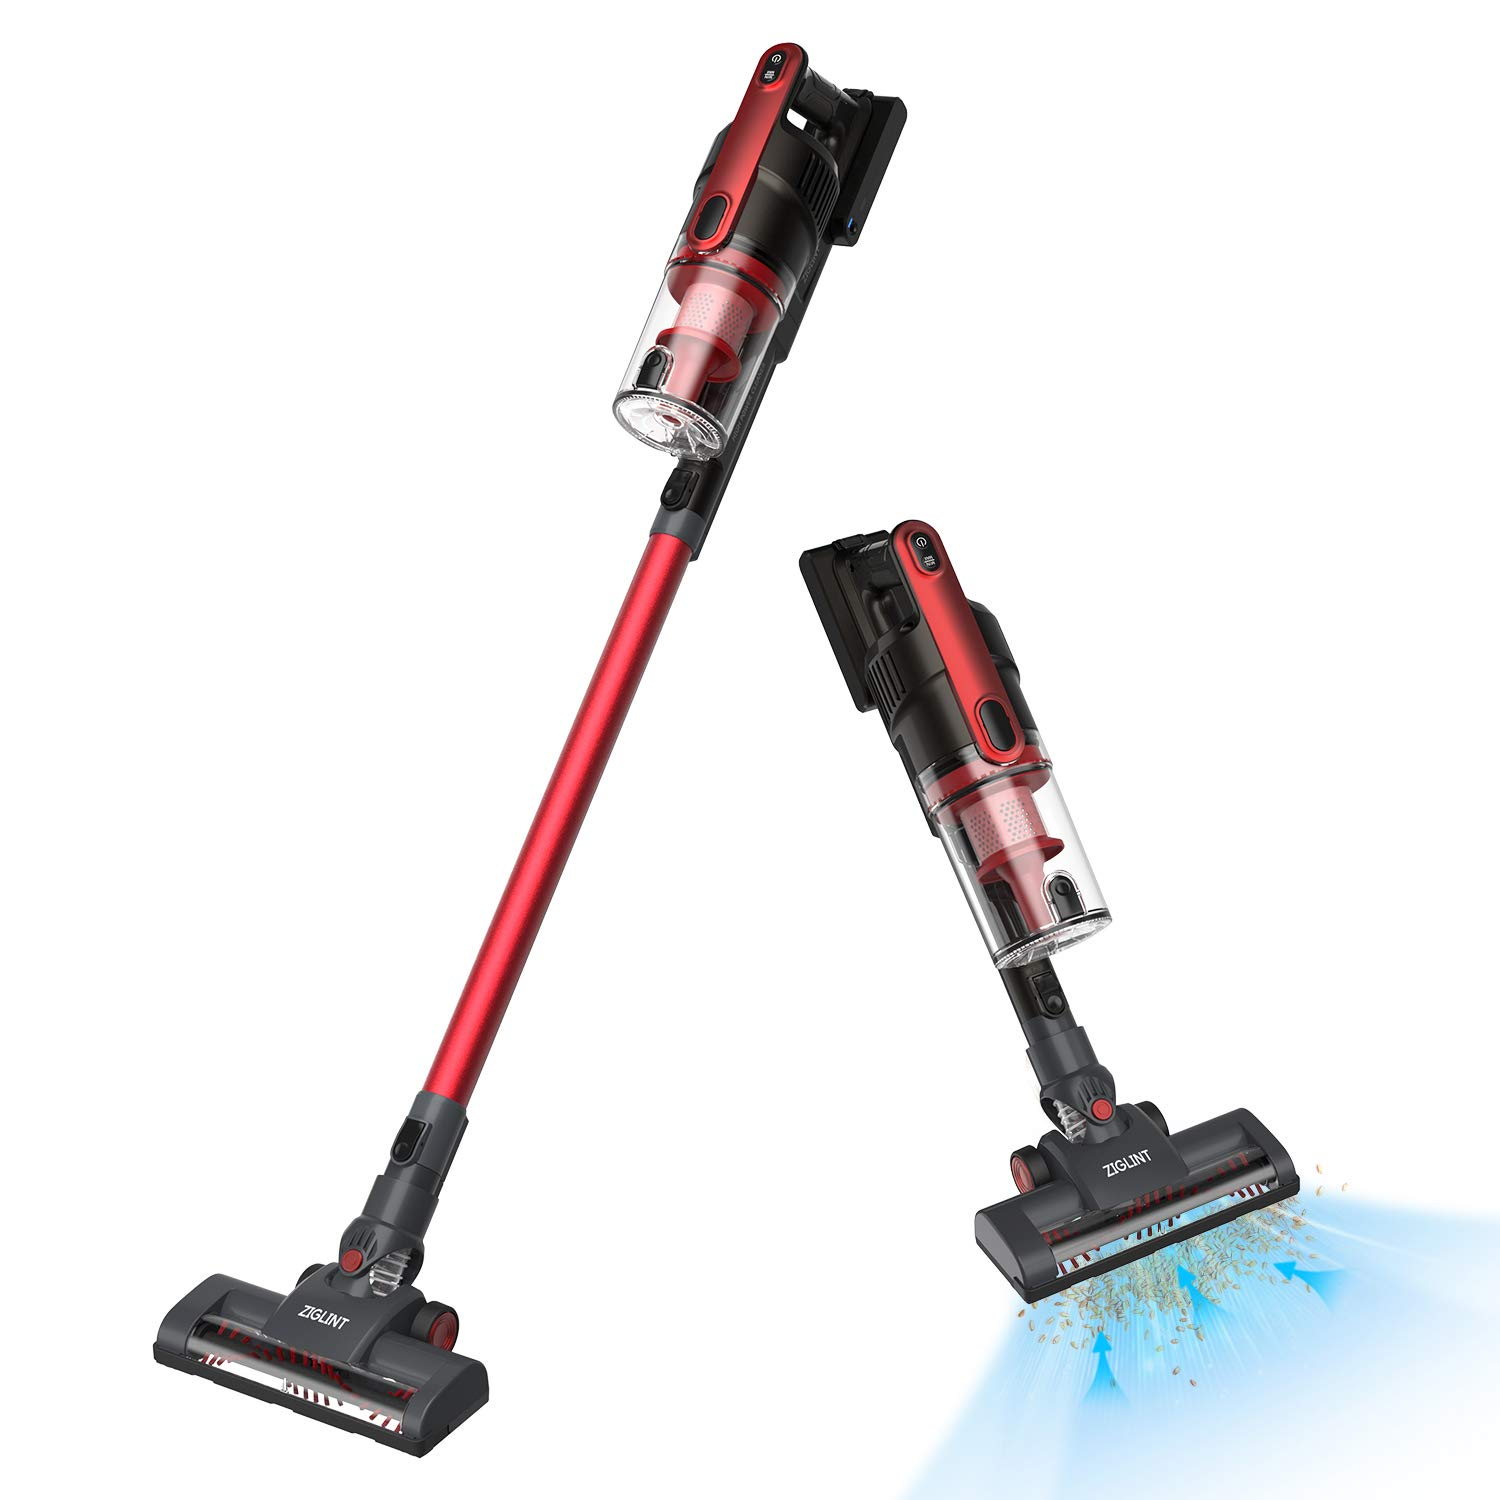 Z5 Ultra Lightweight Cordless Stick Vacuum Cleaner Long Run Time and Powerful Suction for Pet Hair Carpet Hardwood Floor Sofa, with Large Dust Cabin, 180° Rotatable Head, 3 Attachments and Wall Mount